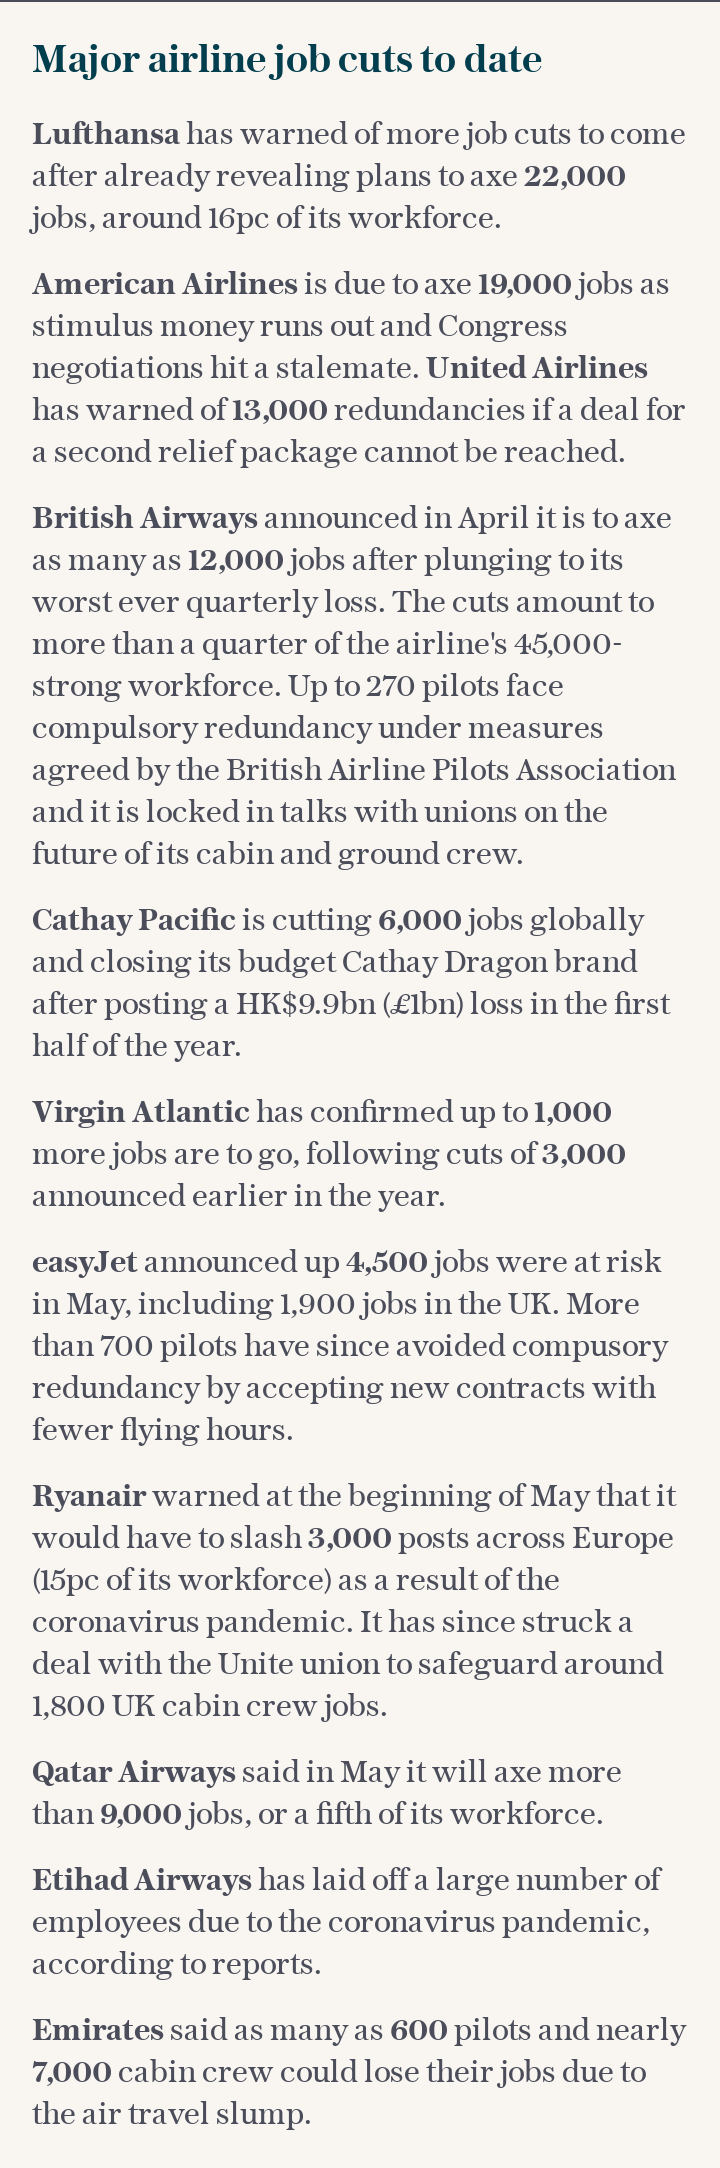 Airline job cuts to date